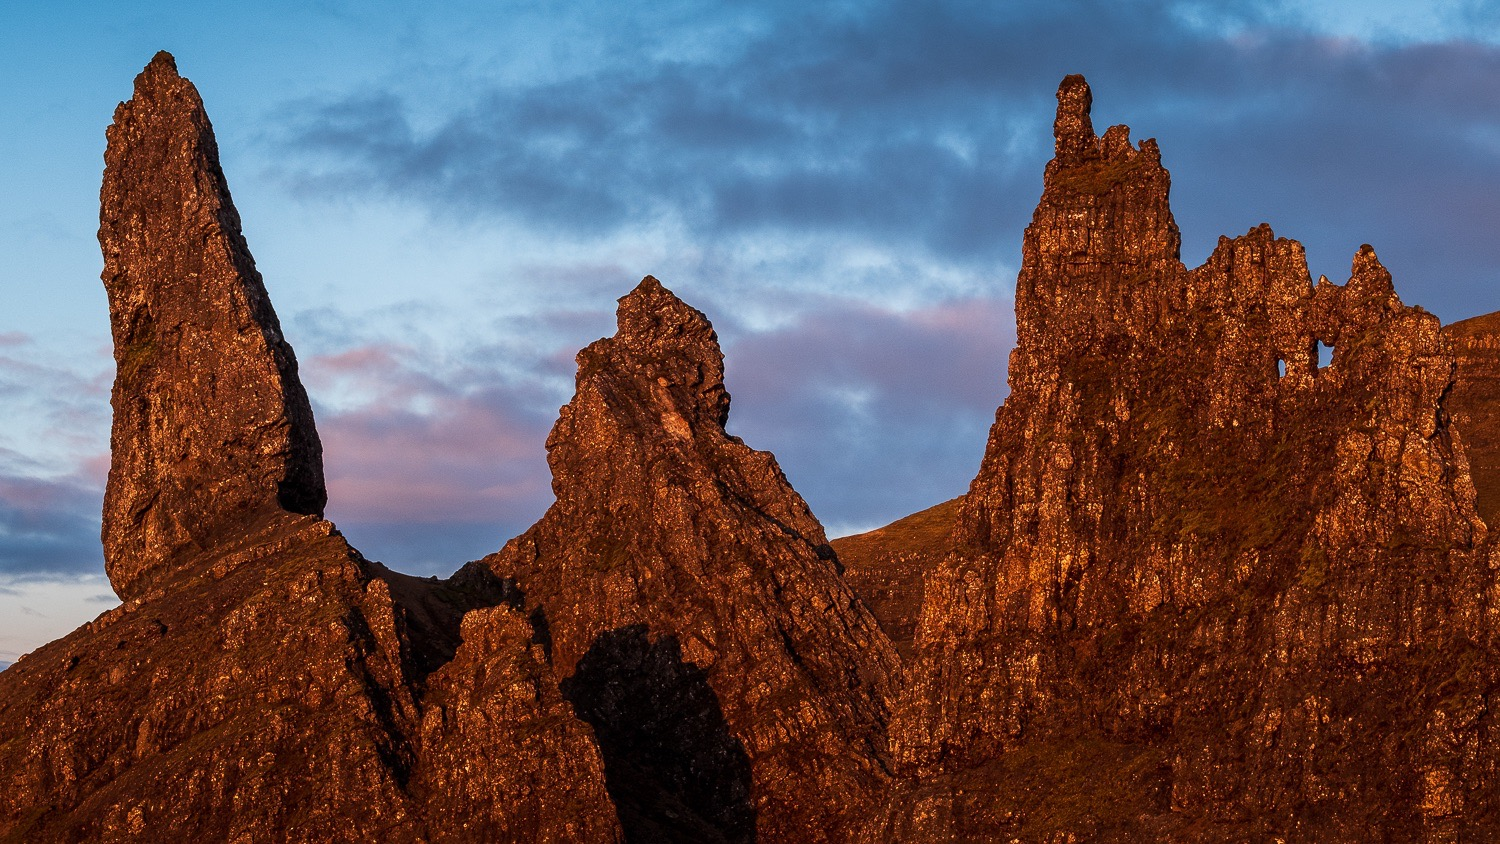 0078-scotland-tamron-le monde de la photo-paysage-20190511063305-compress.jpg